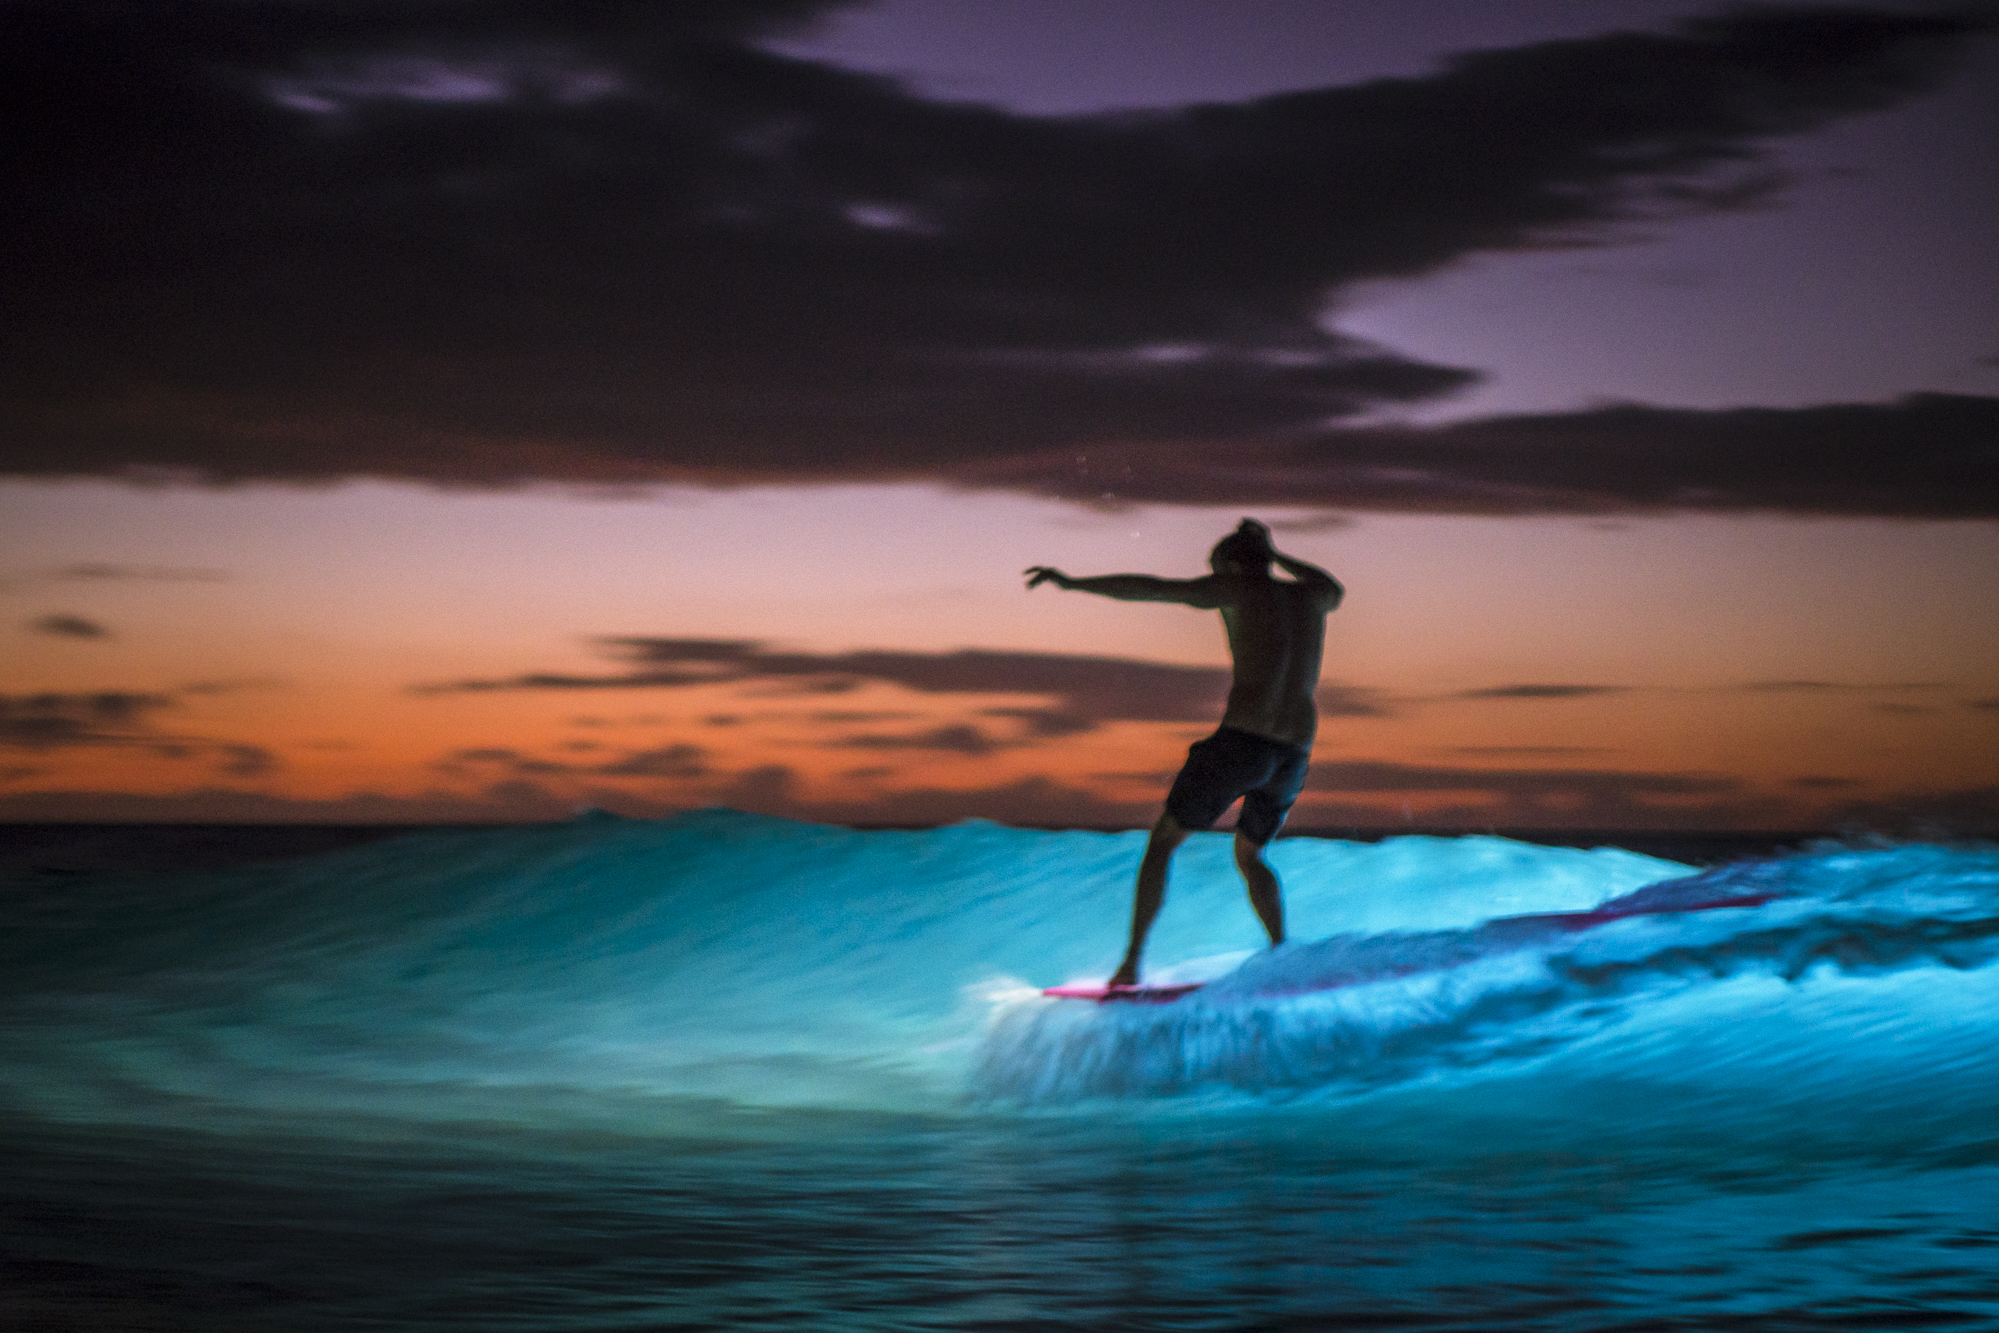 man surfing a wave at night lit by lume cube